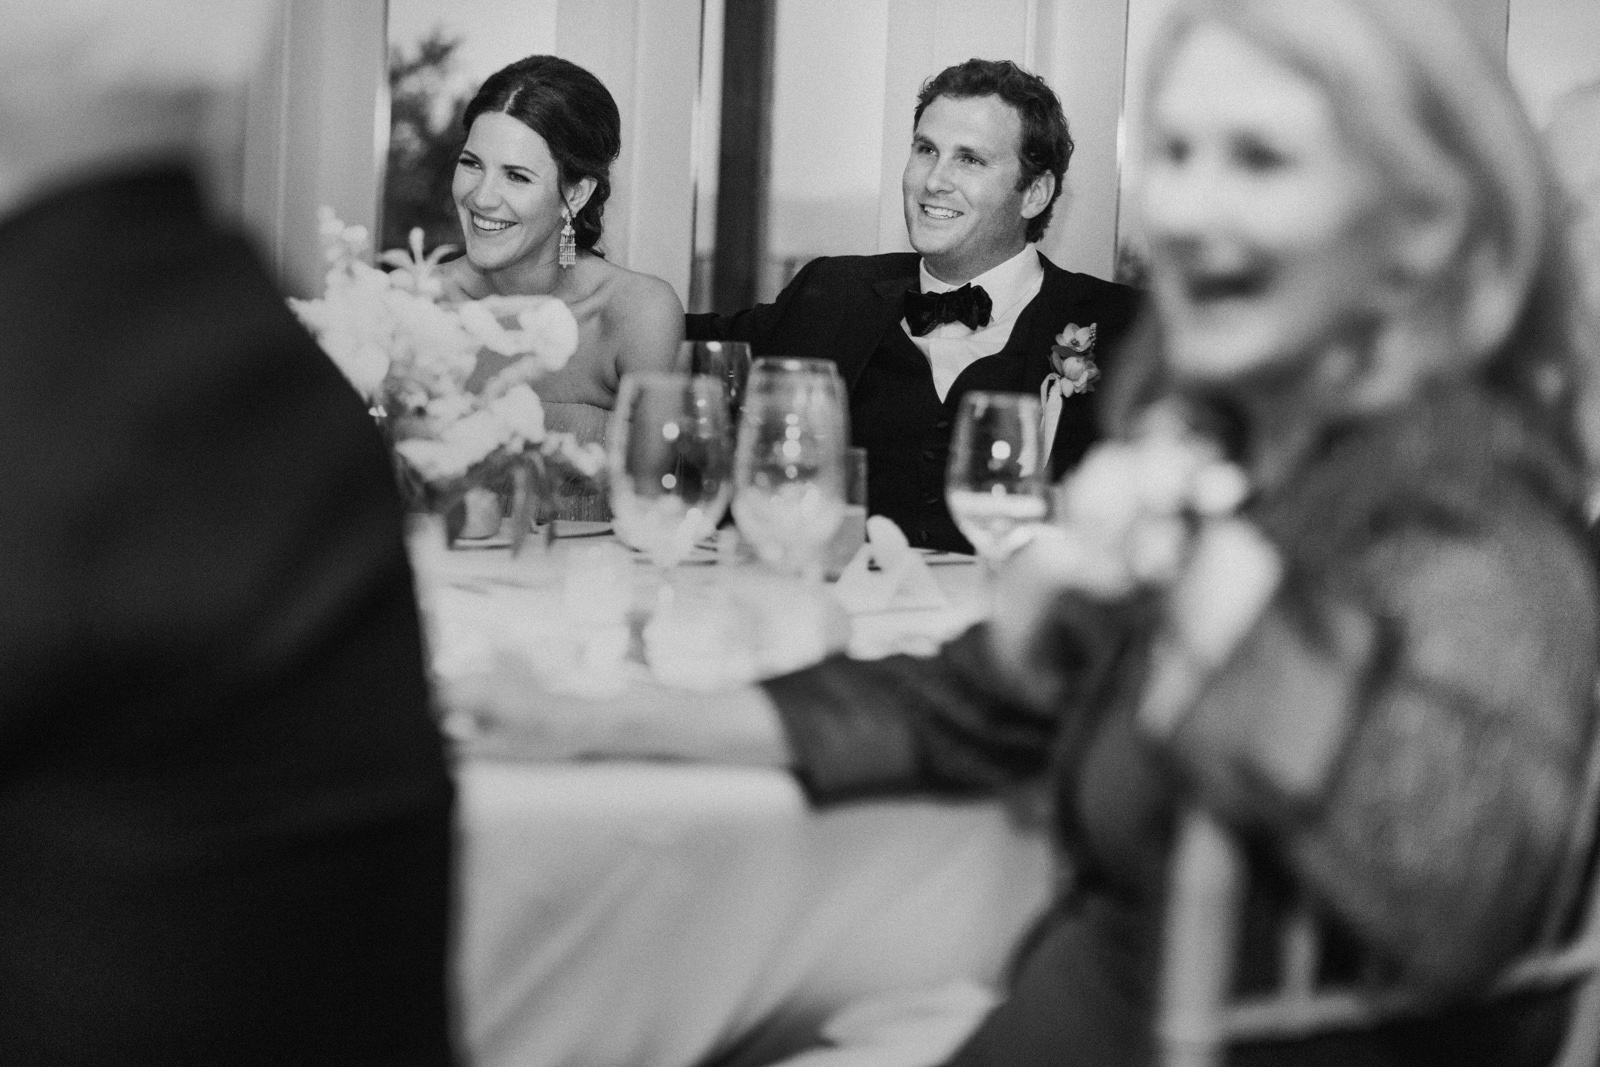 San Francisco - Napa Valley Wedding Photographer - For the Love of It-018.jpg